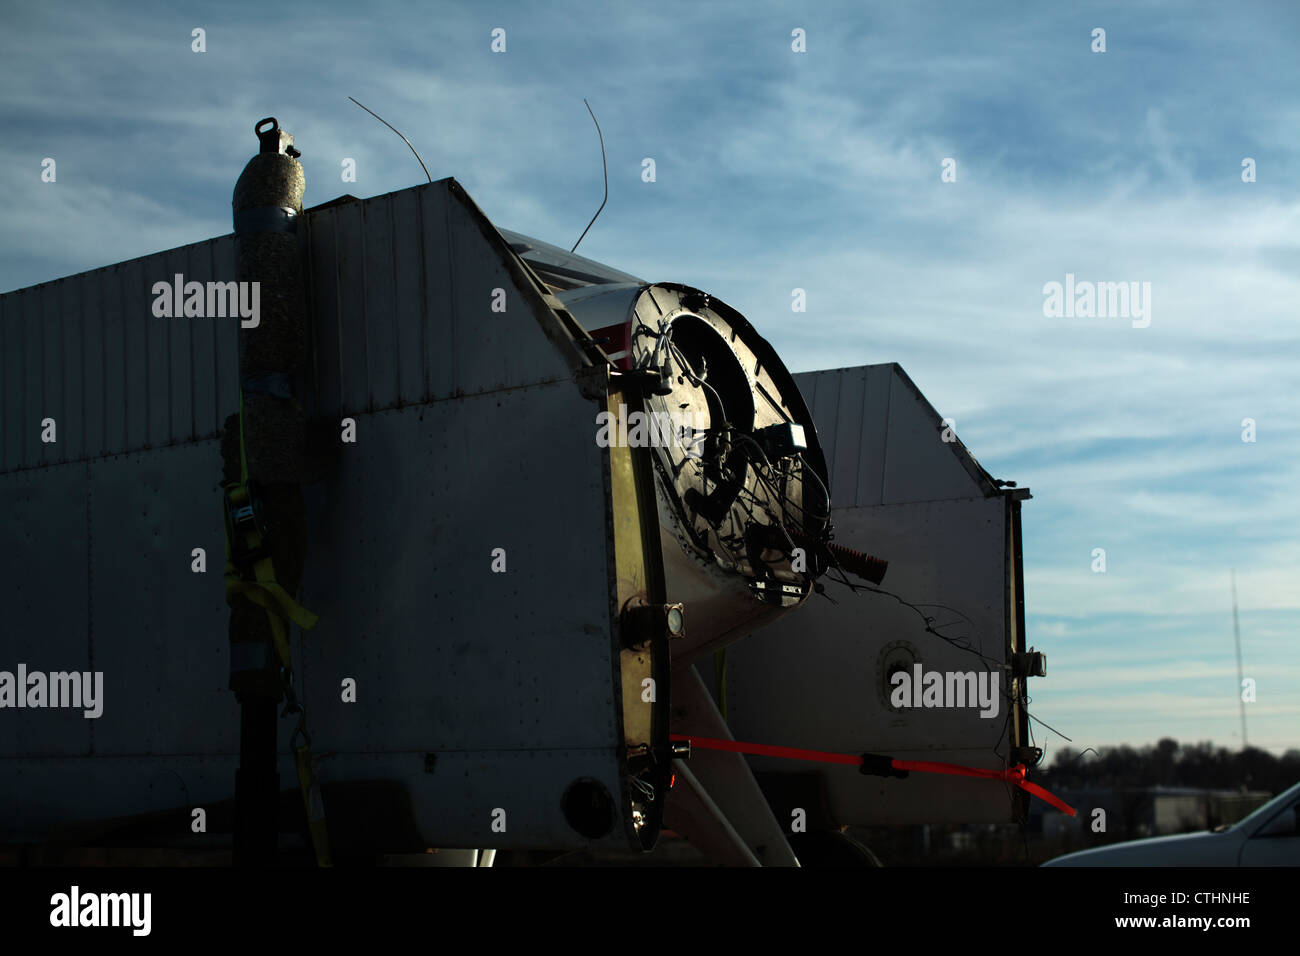 Small airplane fuselage, disassembled on truck. - Stock Image